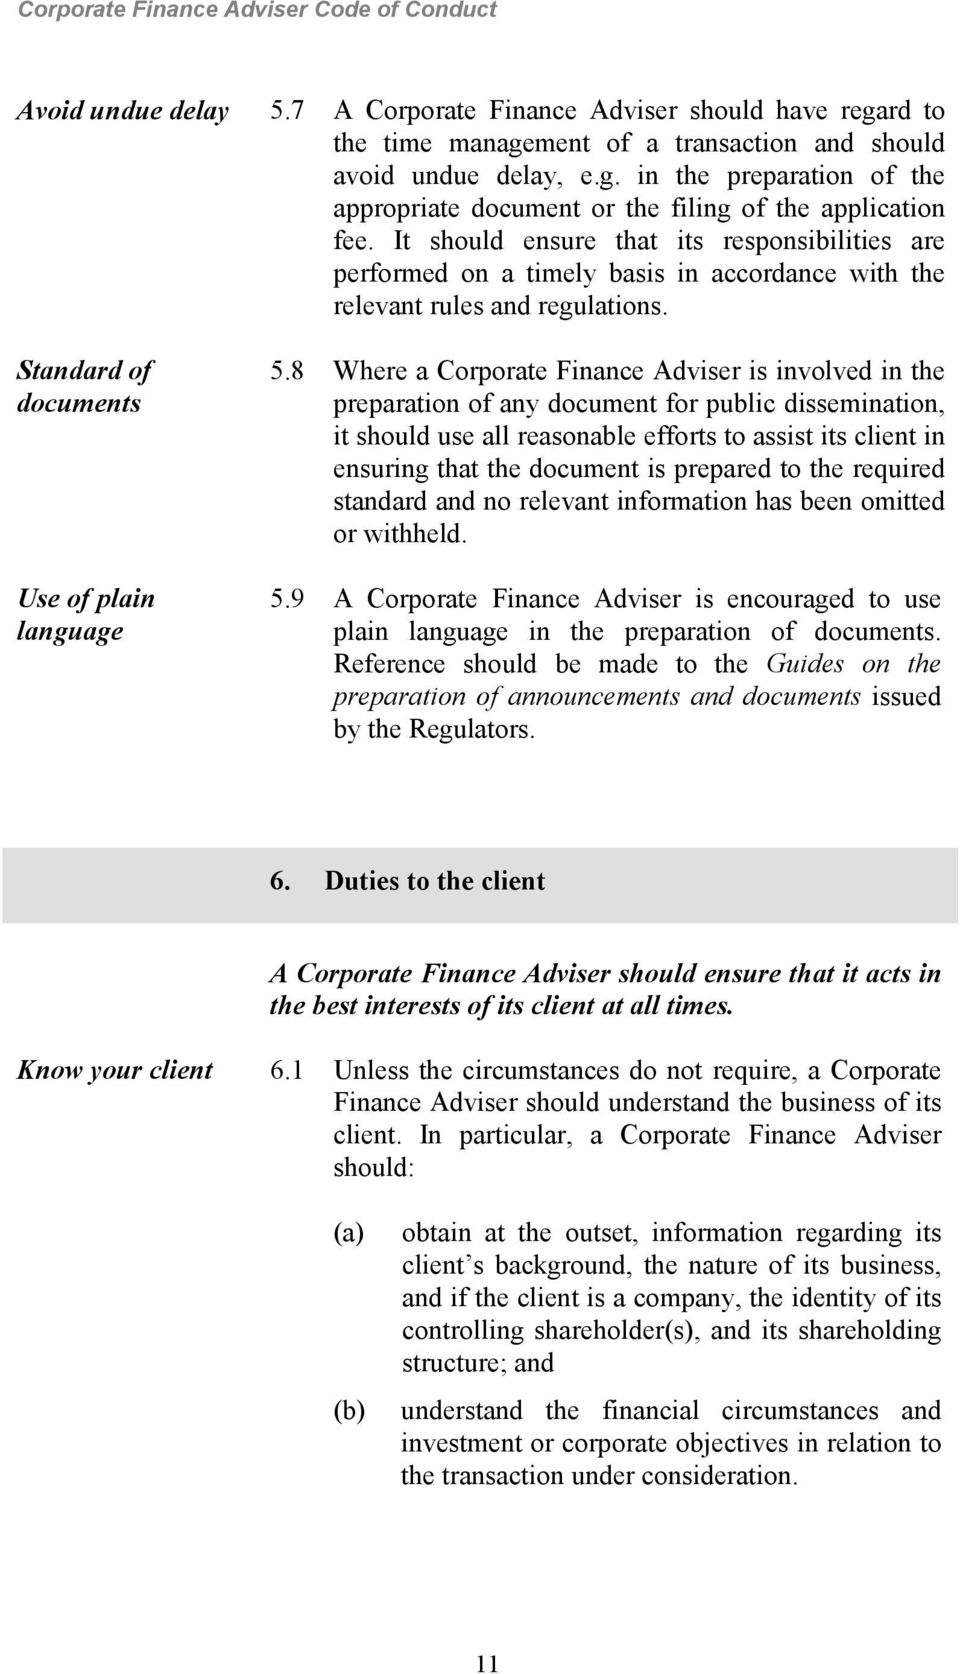 8 Where a Corporate Finance Adviser is involved in the preparation of any document for public dissemination, it should use all reasonable efforts to assist its client in ensuring that the document is